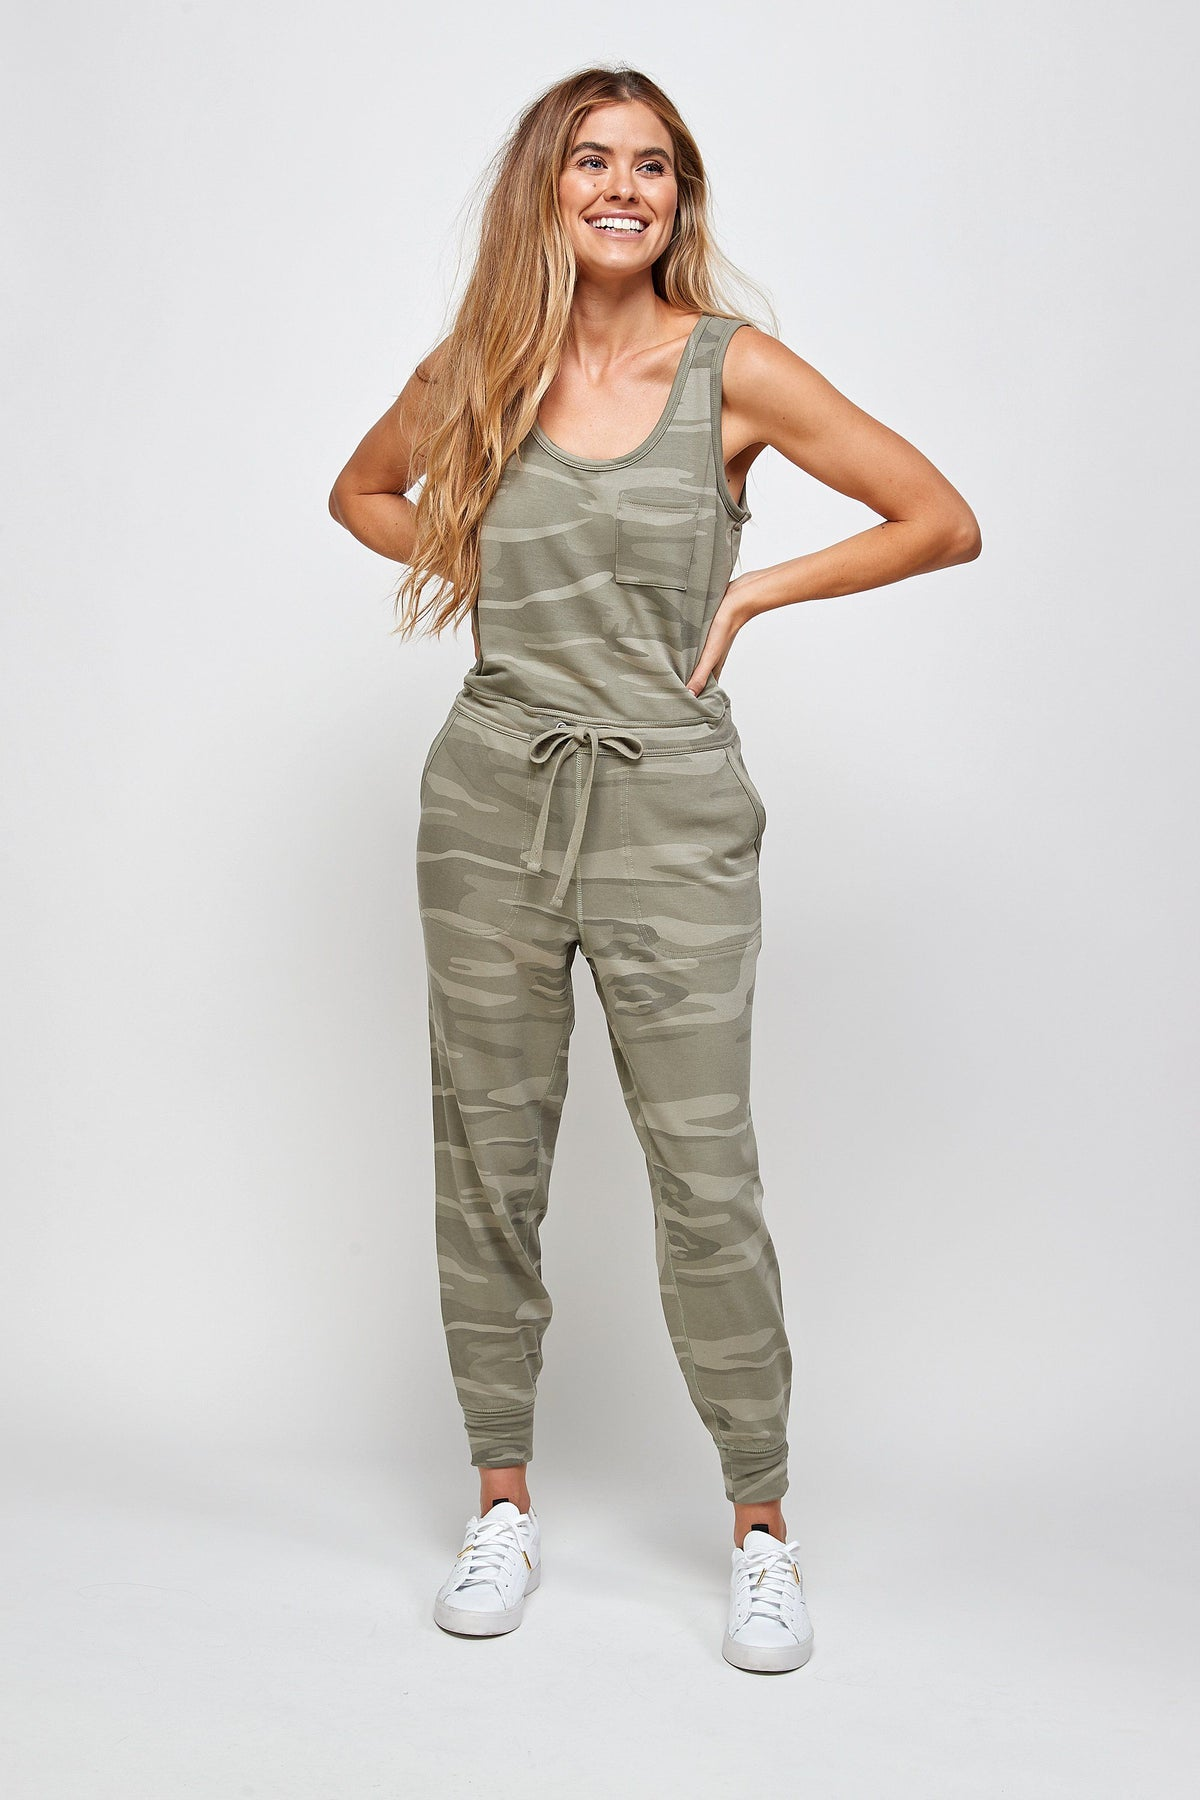 PERRY JUMPSUIT - PRE PACK 6 UNITS